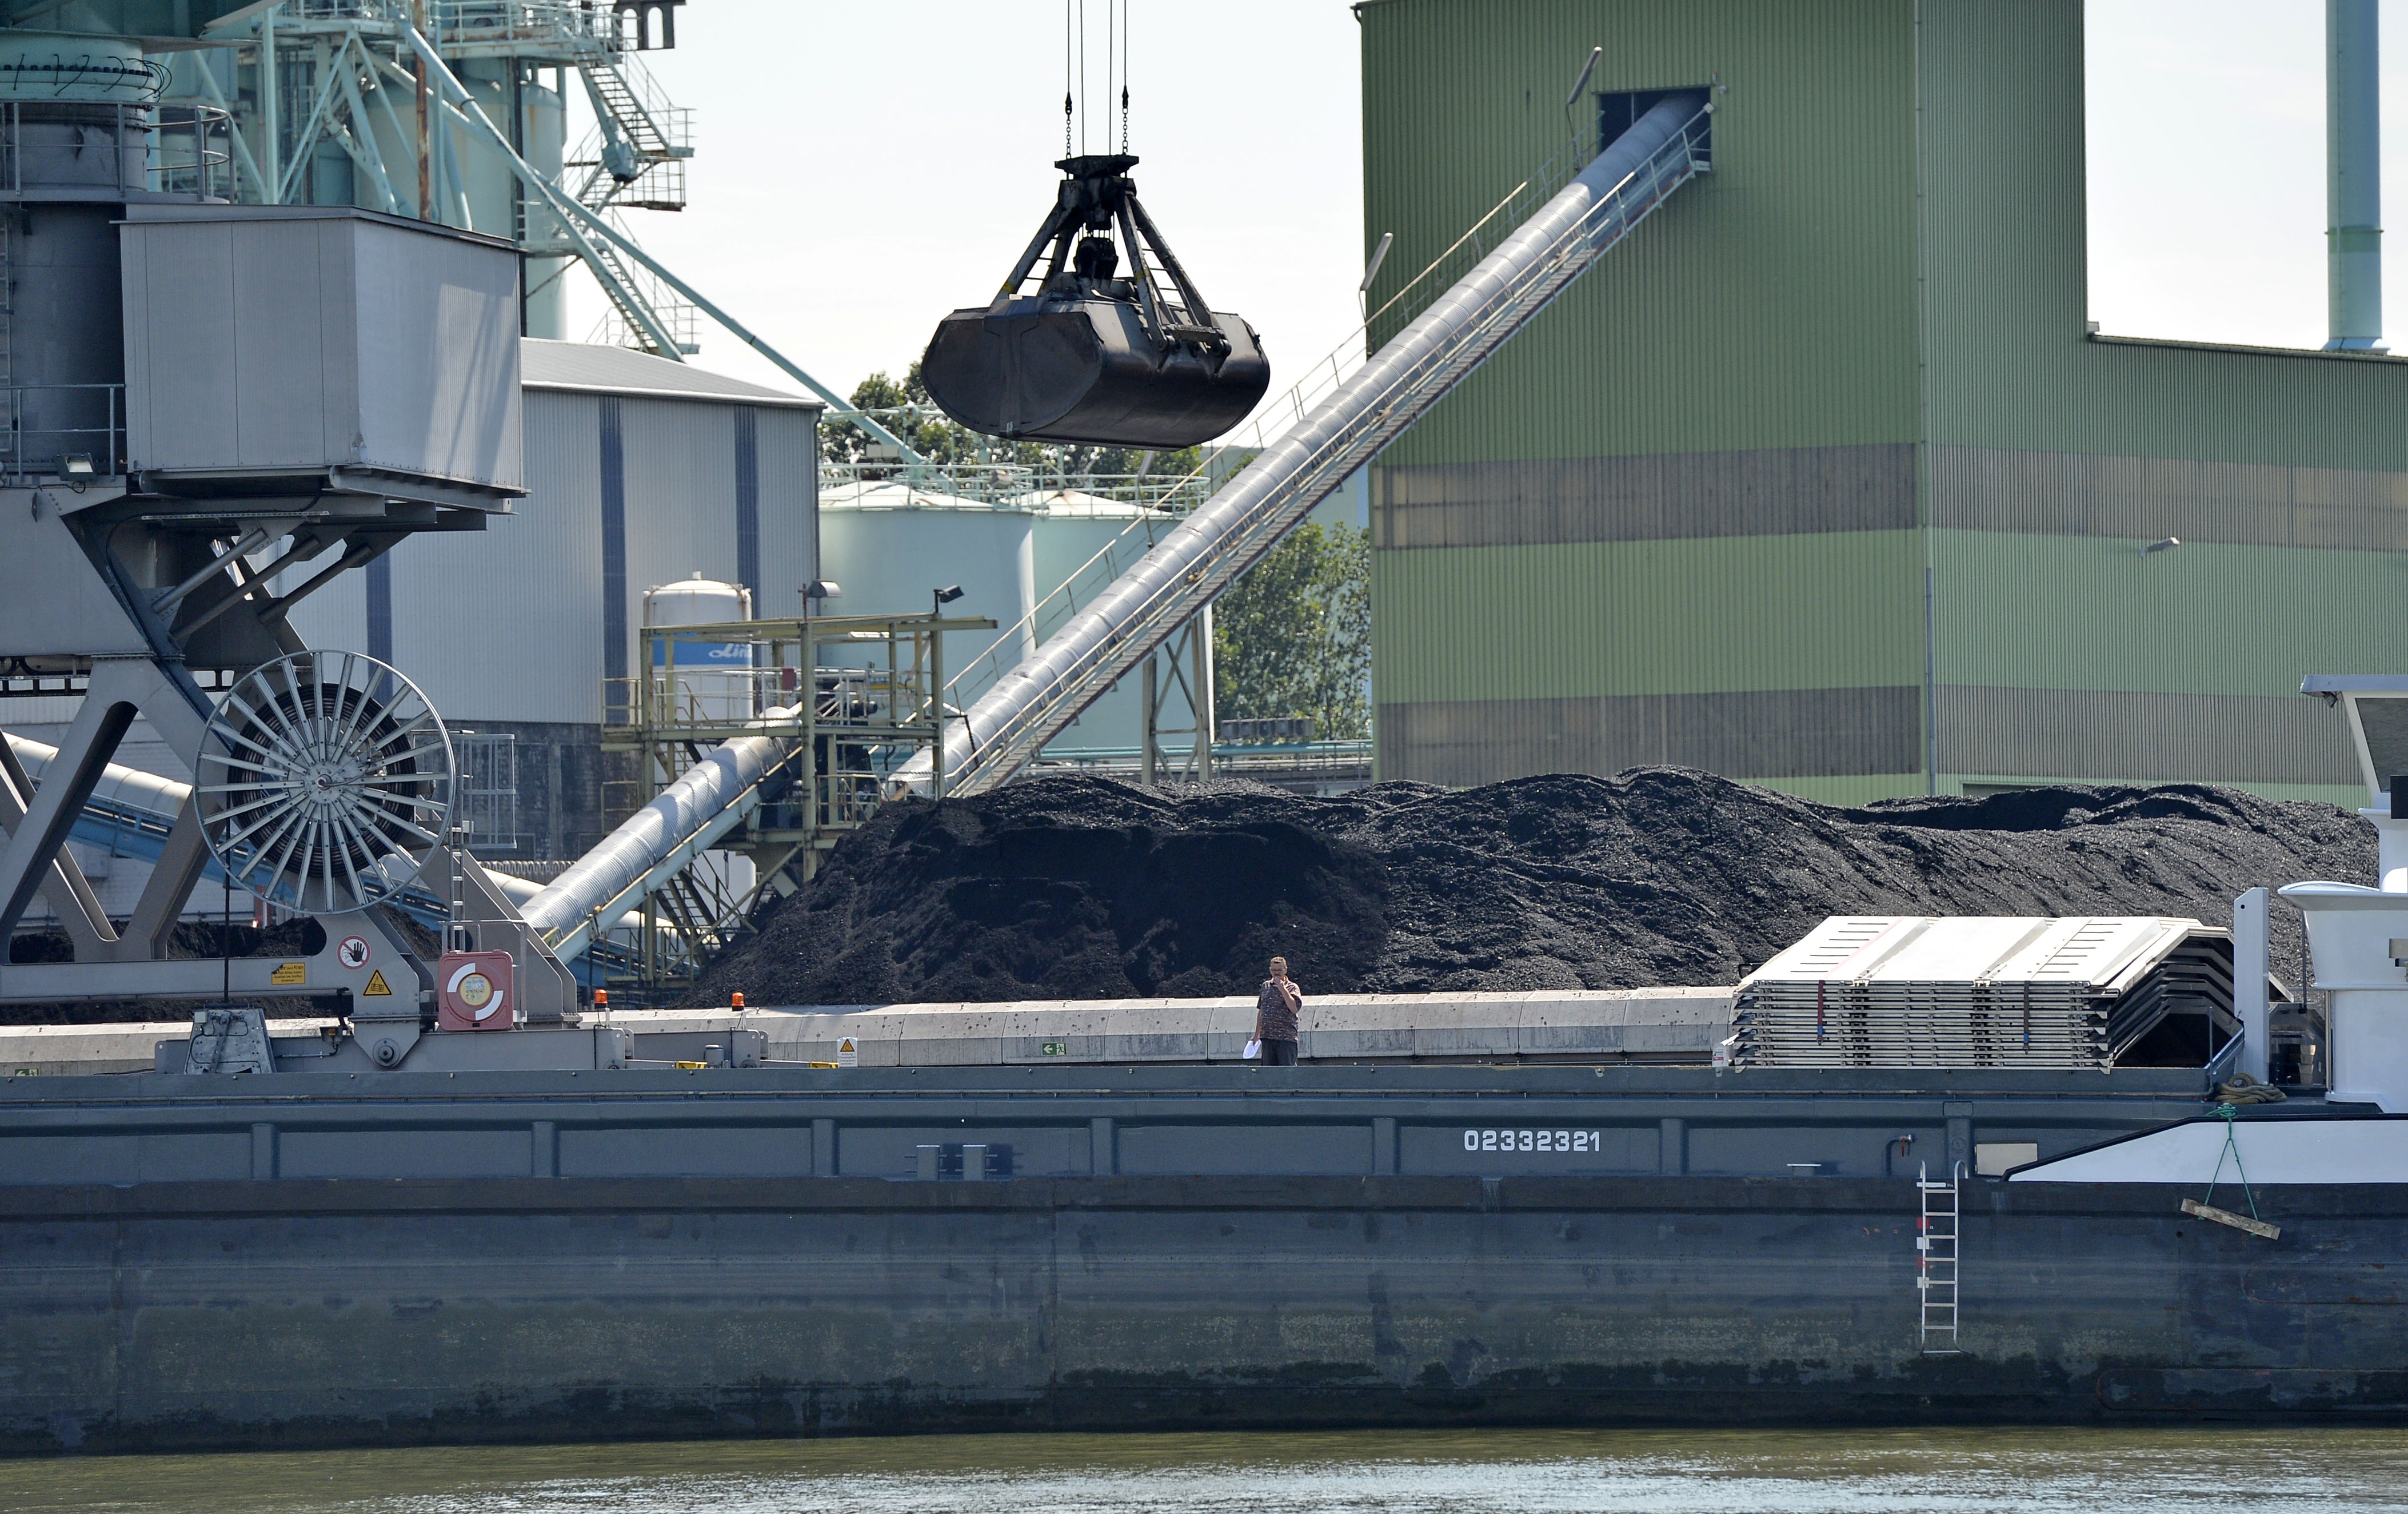 Obama Exporting Pollution Coal is unloaded at the Trianel power plant in Luenen, Germany, Thursday, July 24, 2014. The 750-megawatt power plant relies completely on coal imports, about half from the U.S. Soon, all of Germany's coal-fired power plants will be dependent on imports, with the country scheduled to halt all coal mining in 2018 when government subsidies end. As the Obama administration weans the U.S. off dirty fuels blamed for global warming, energy companies have been sending more of America's unwanted energy leftovers to other parts of the world, where they could create even more pollution.